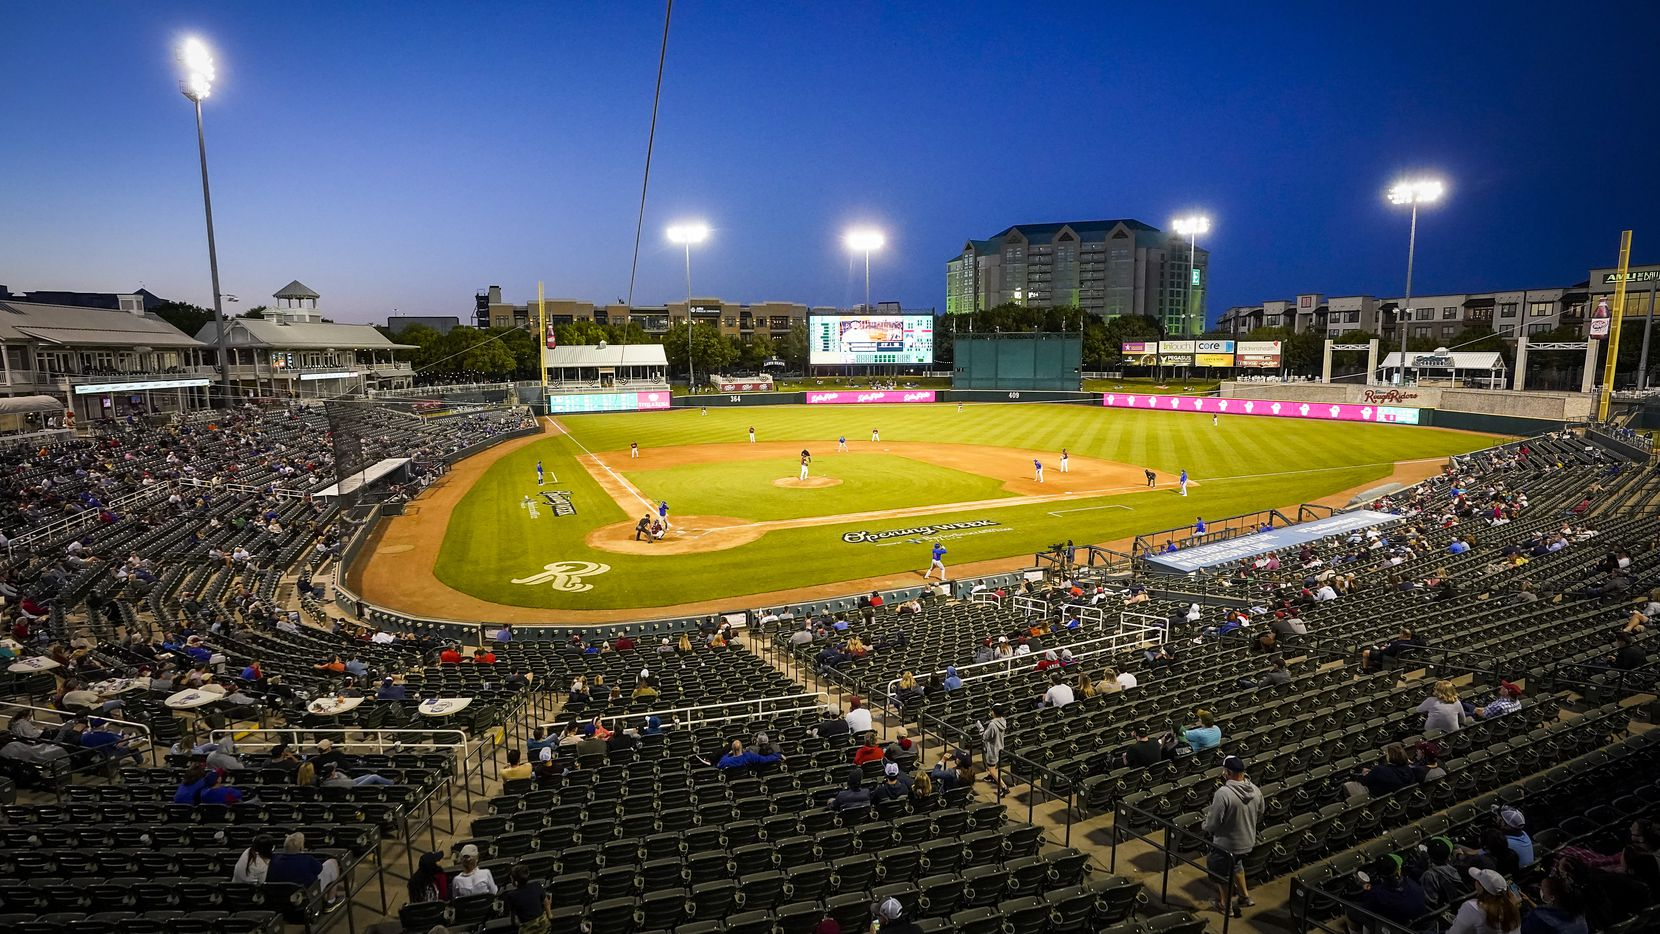 The Frisco RoughRiders face the Midland RockHounds during the season opener at Riders Field on Tuesday, May 4, 2021.